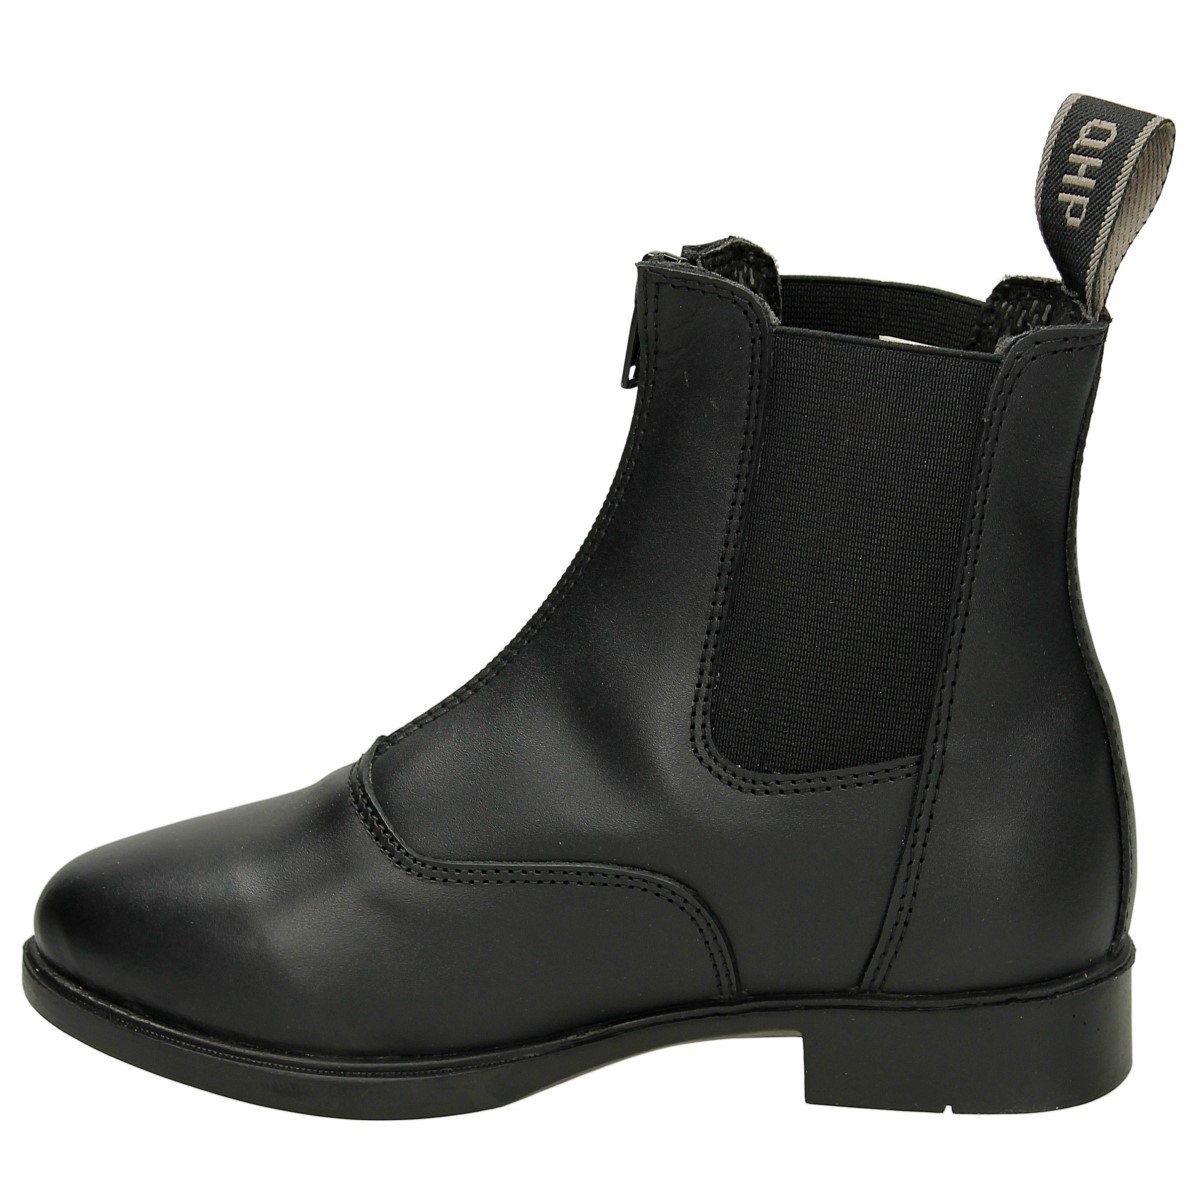 33 EU QHP Winter Ankle Boots Jodhpur Manilla Junior Black Leather